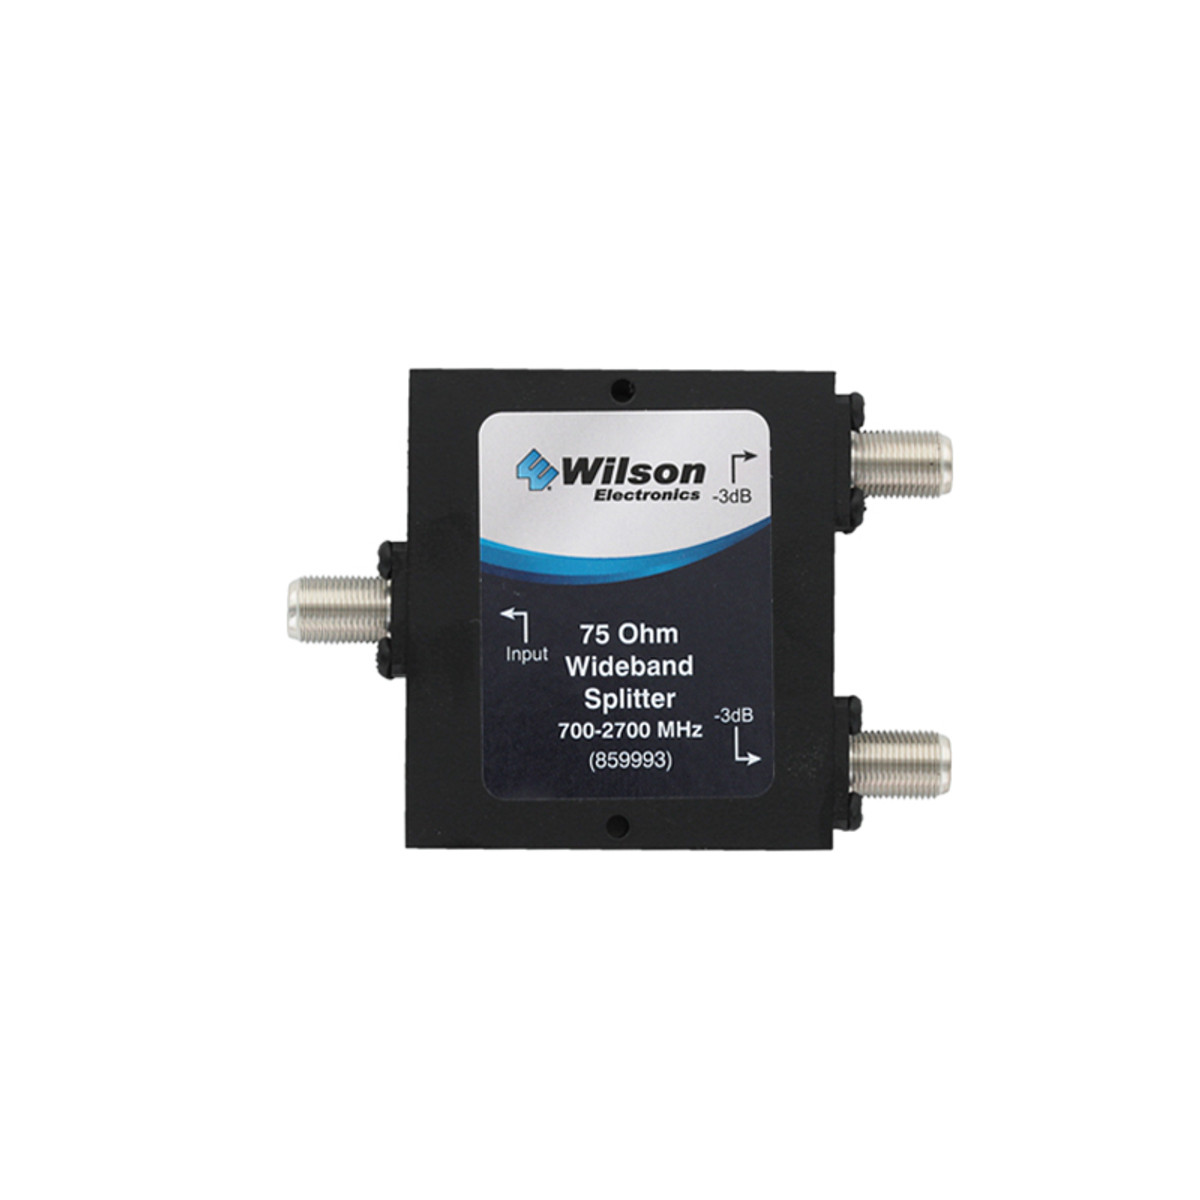 Wilson 859993 -3 dB Splitter 75ohm Wide Band 700-2500 Mhz, Front